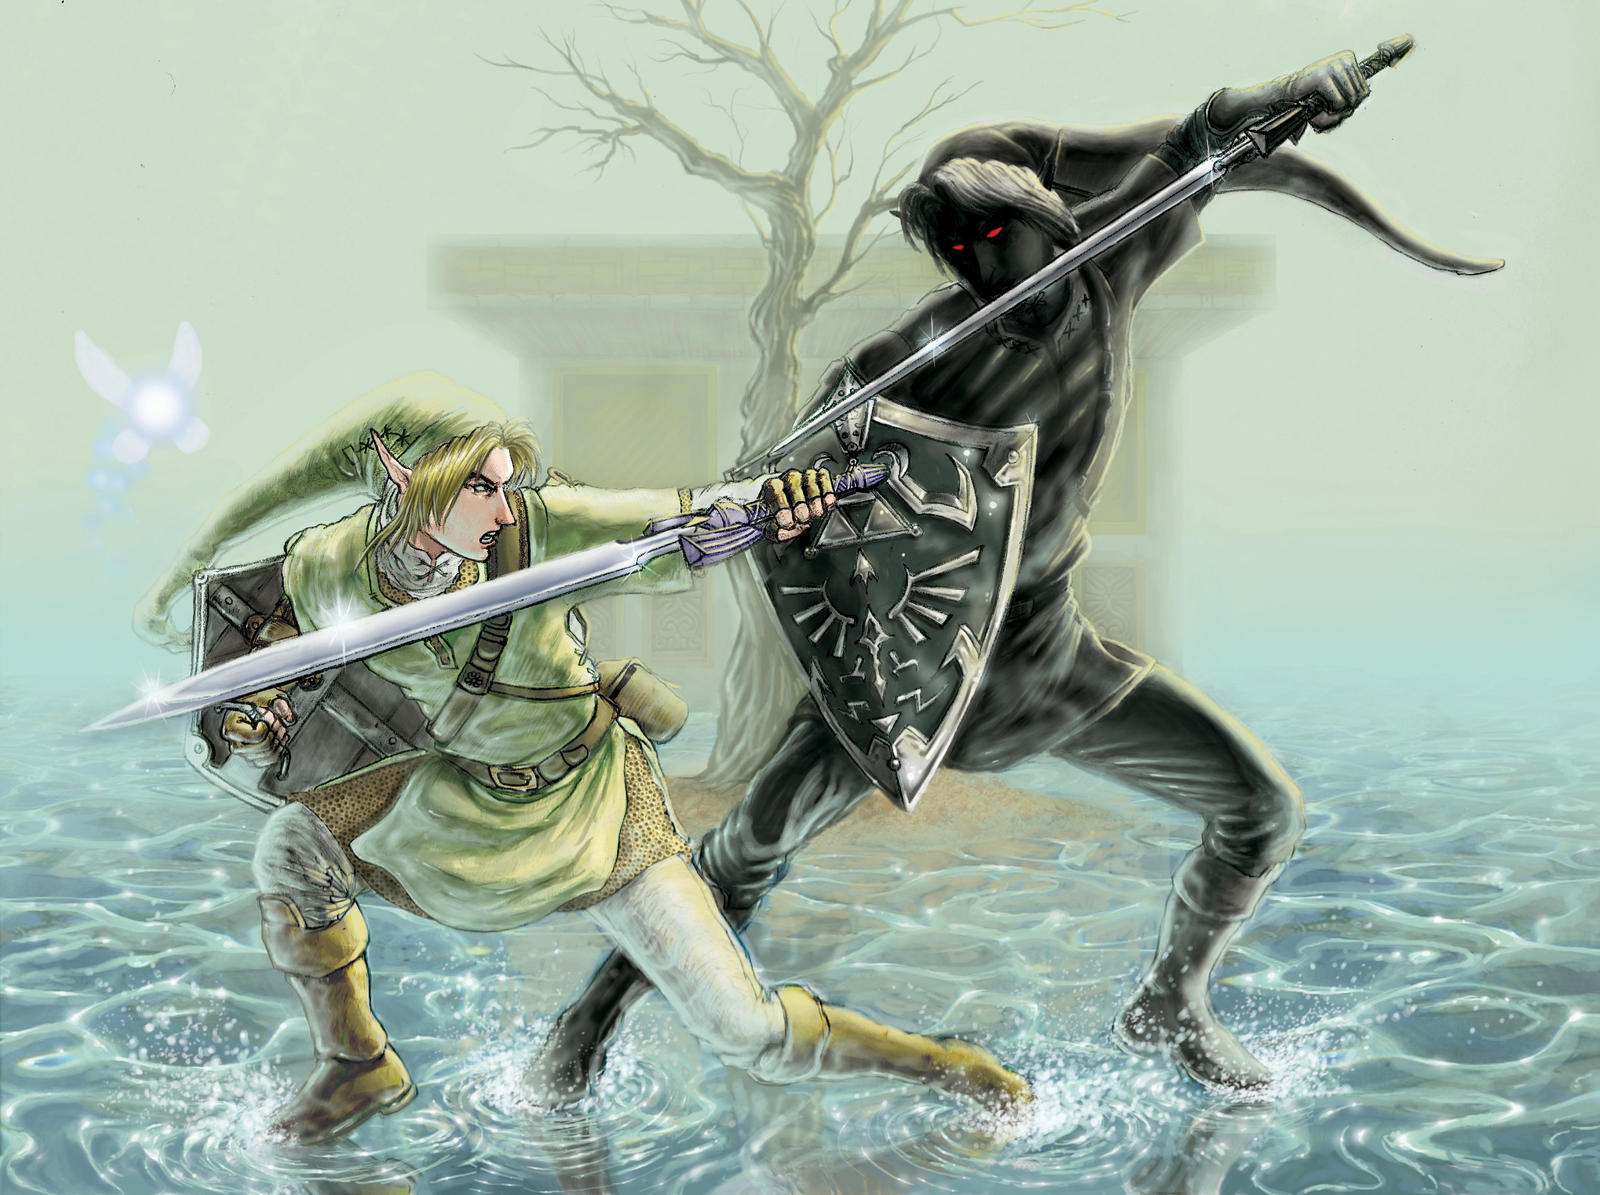 Link's reflection - Dark Link by iangoudelock